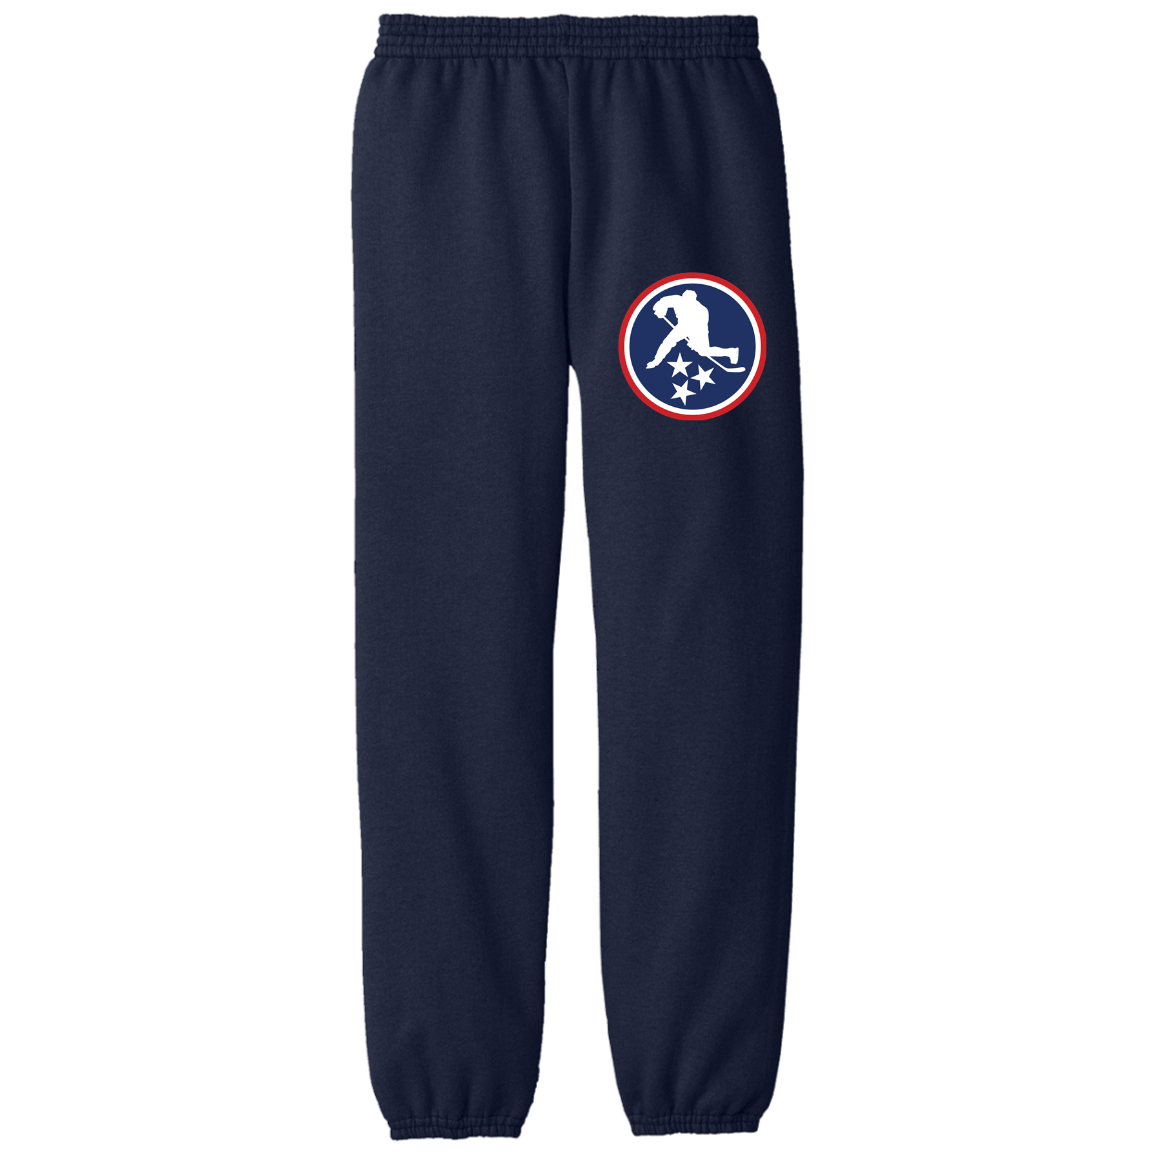 PC90YP Youth Fleece Pants